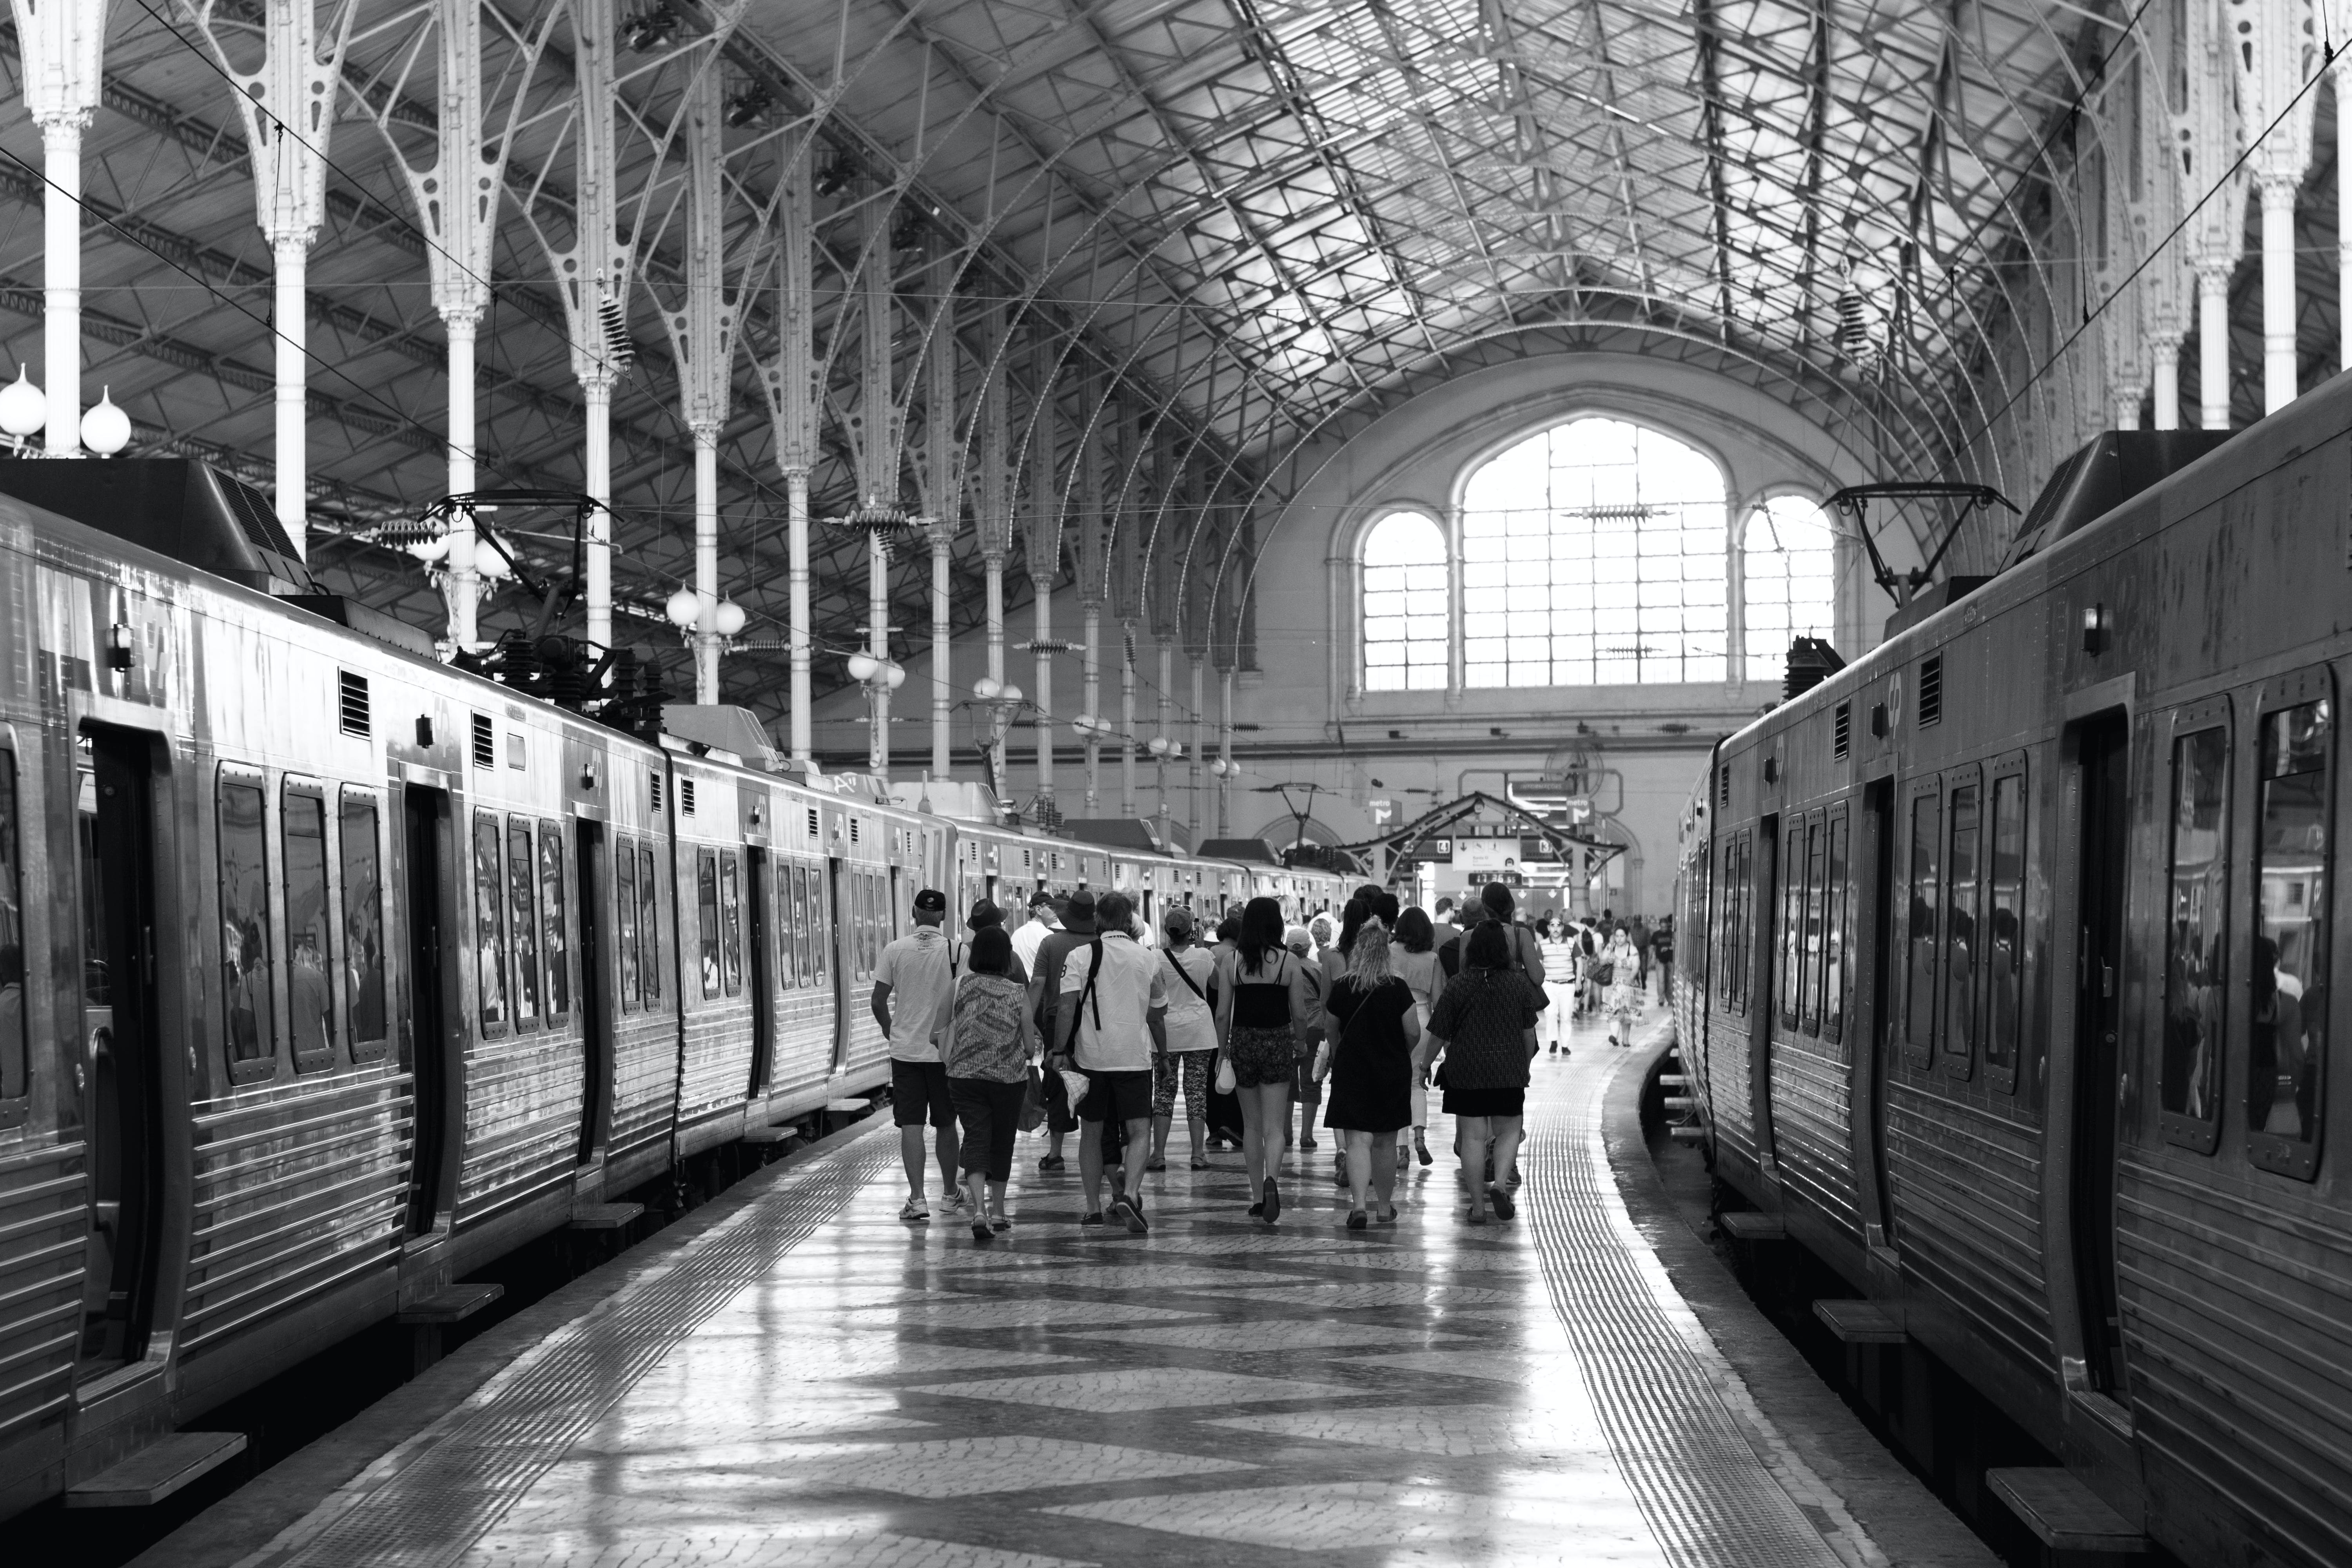 Group of People in Train Station